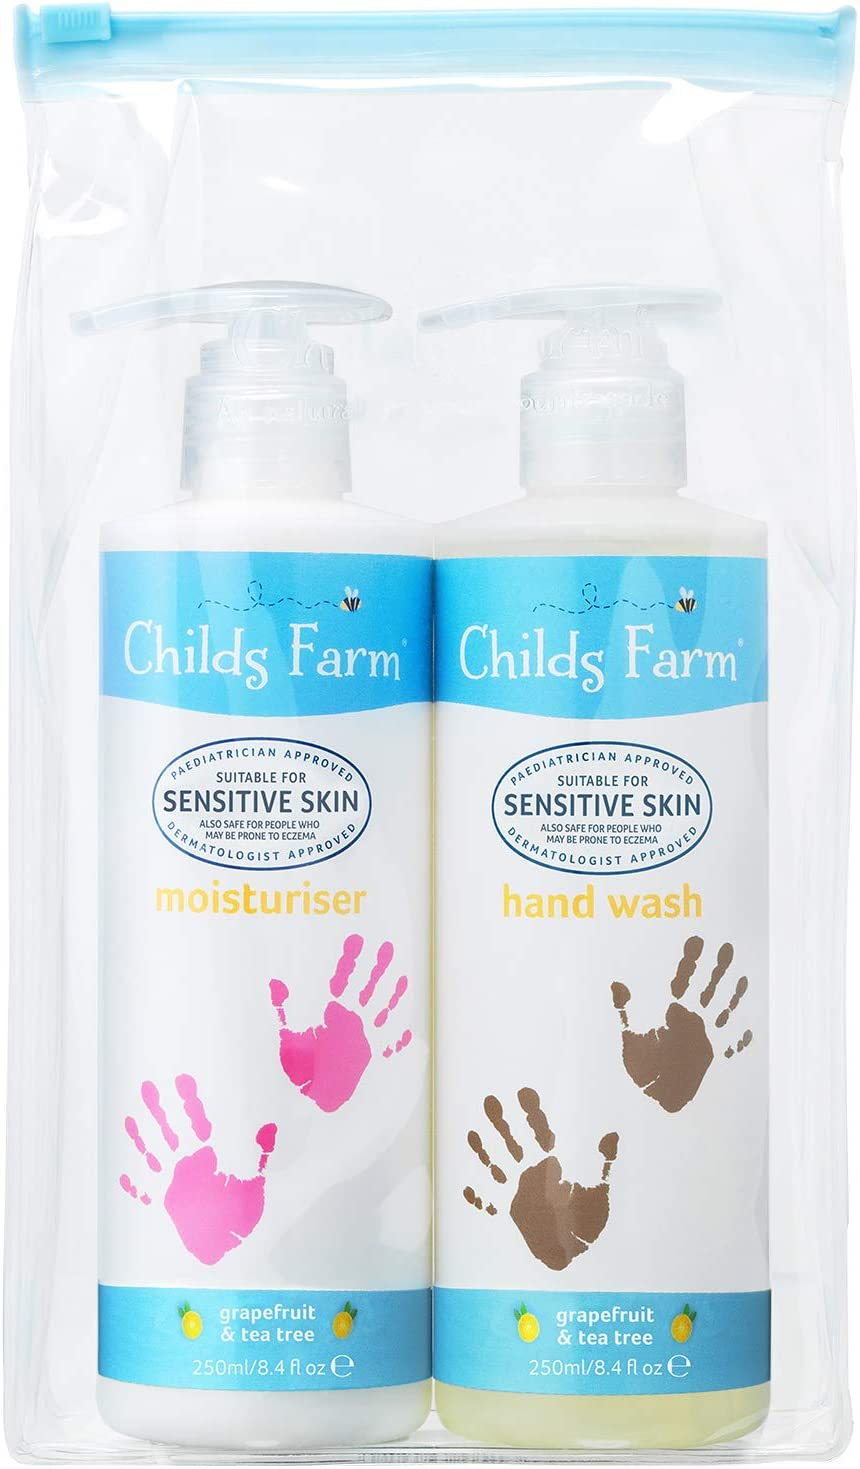 Kids Hand Cream Coupons and Promotions | Get Cheap Kids Hand